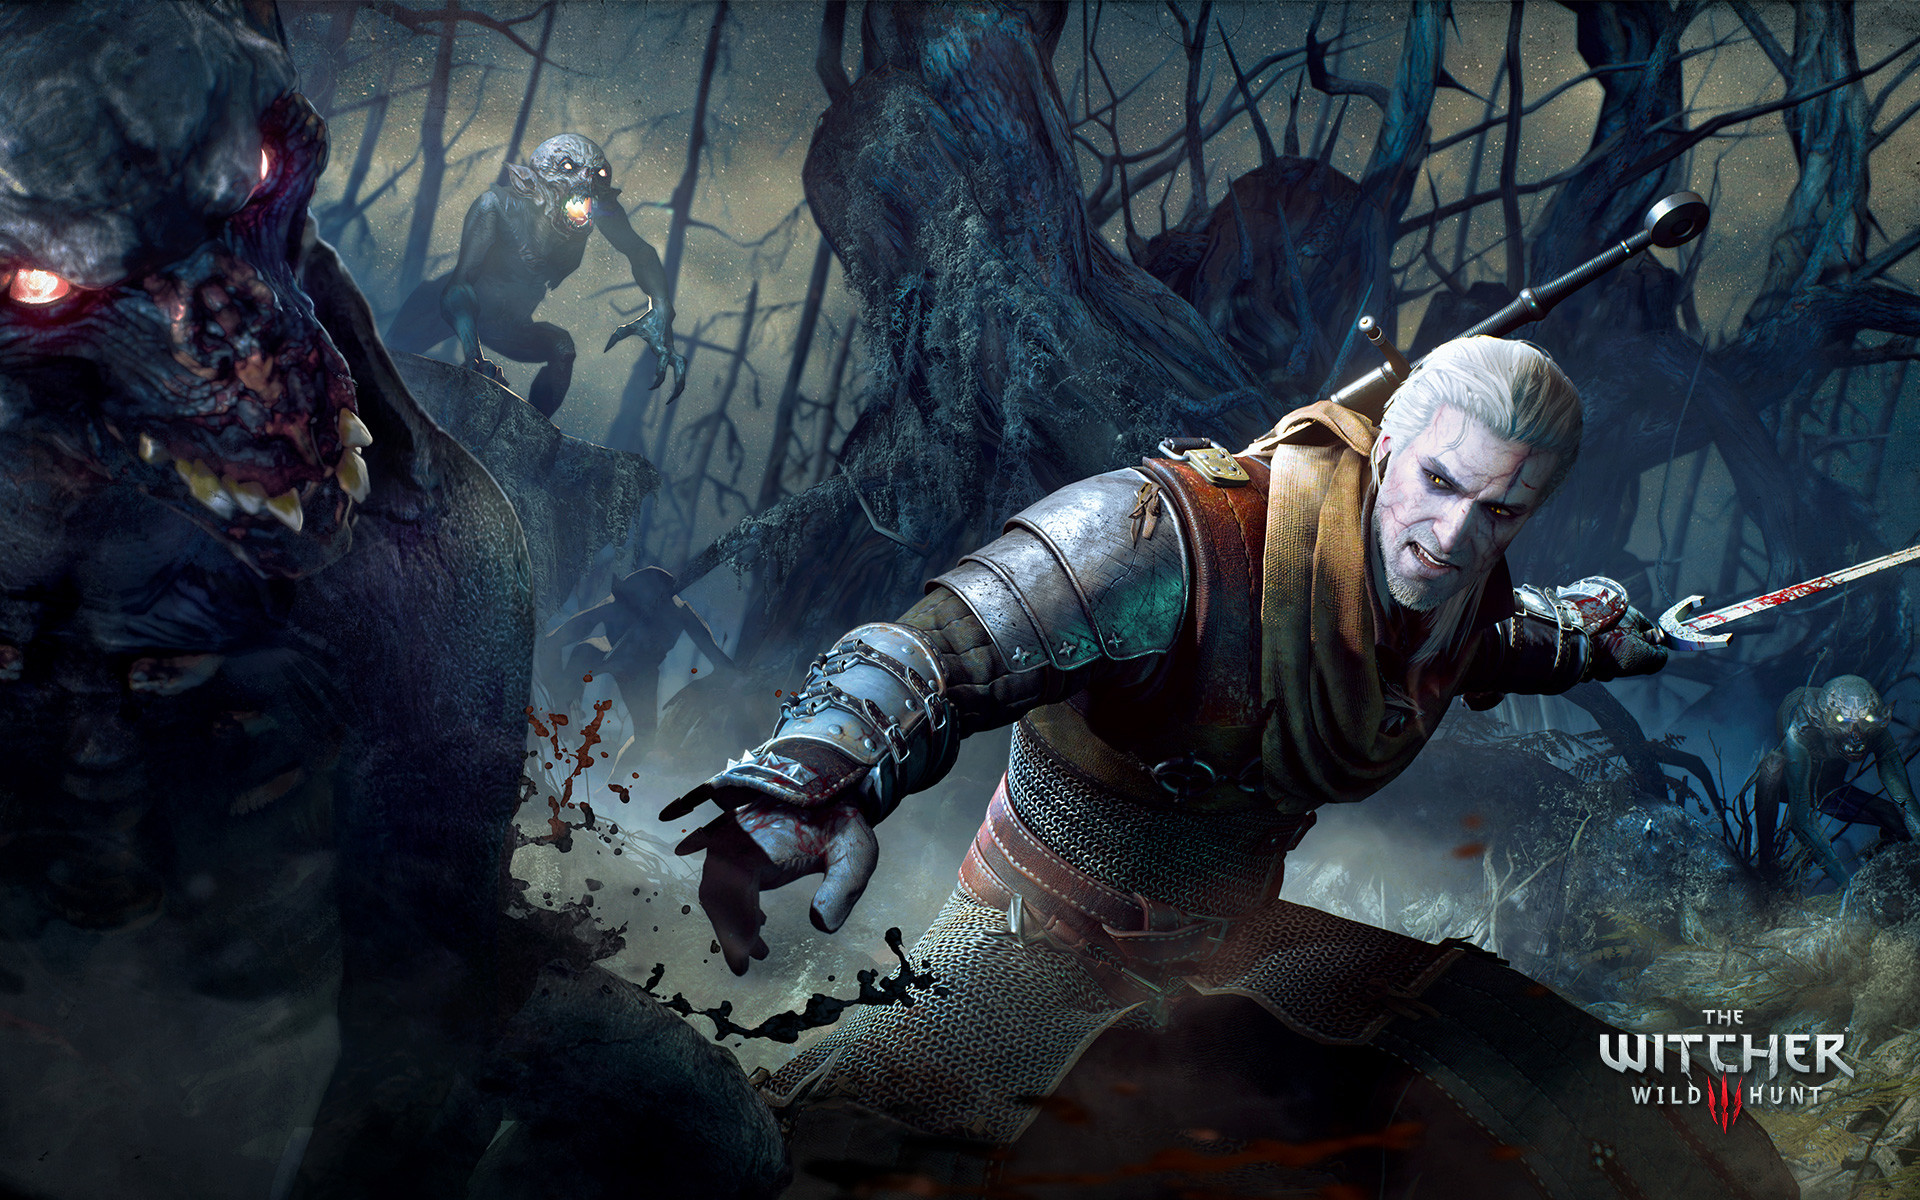 The Witcher Wild Hunt Dancer Wallpapers HD Wallpapers 1920×1080 The Witcher  Wallpaper (30